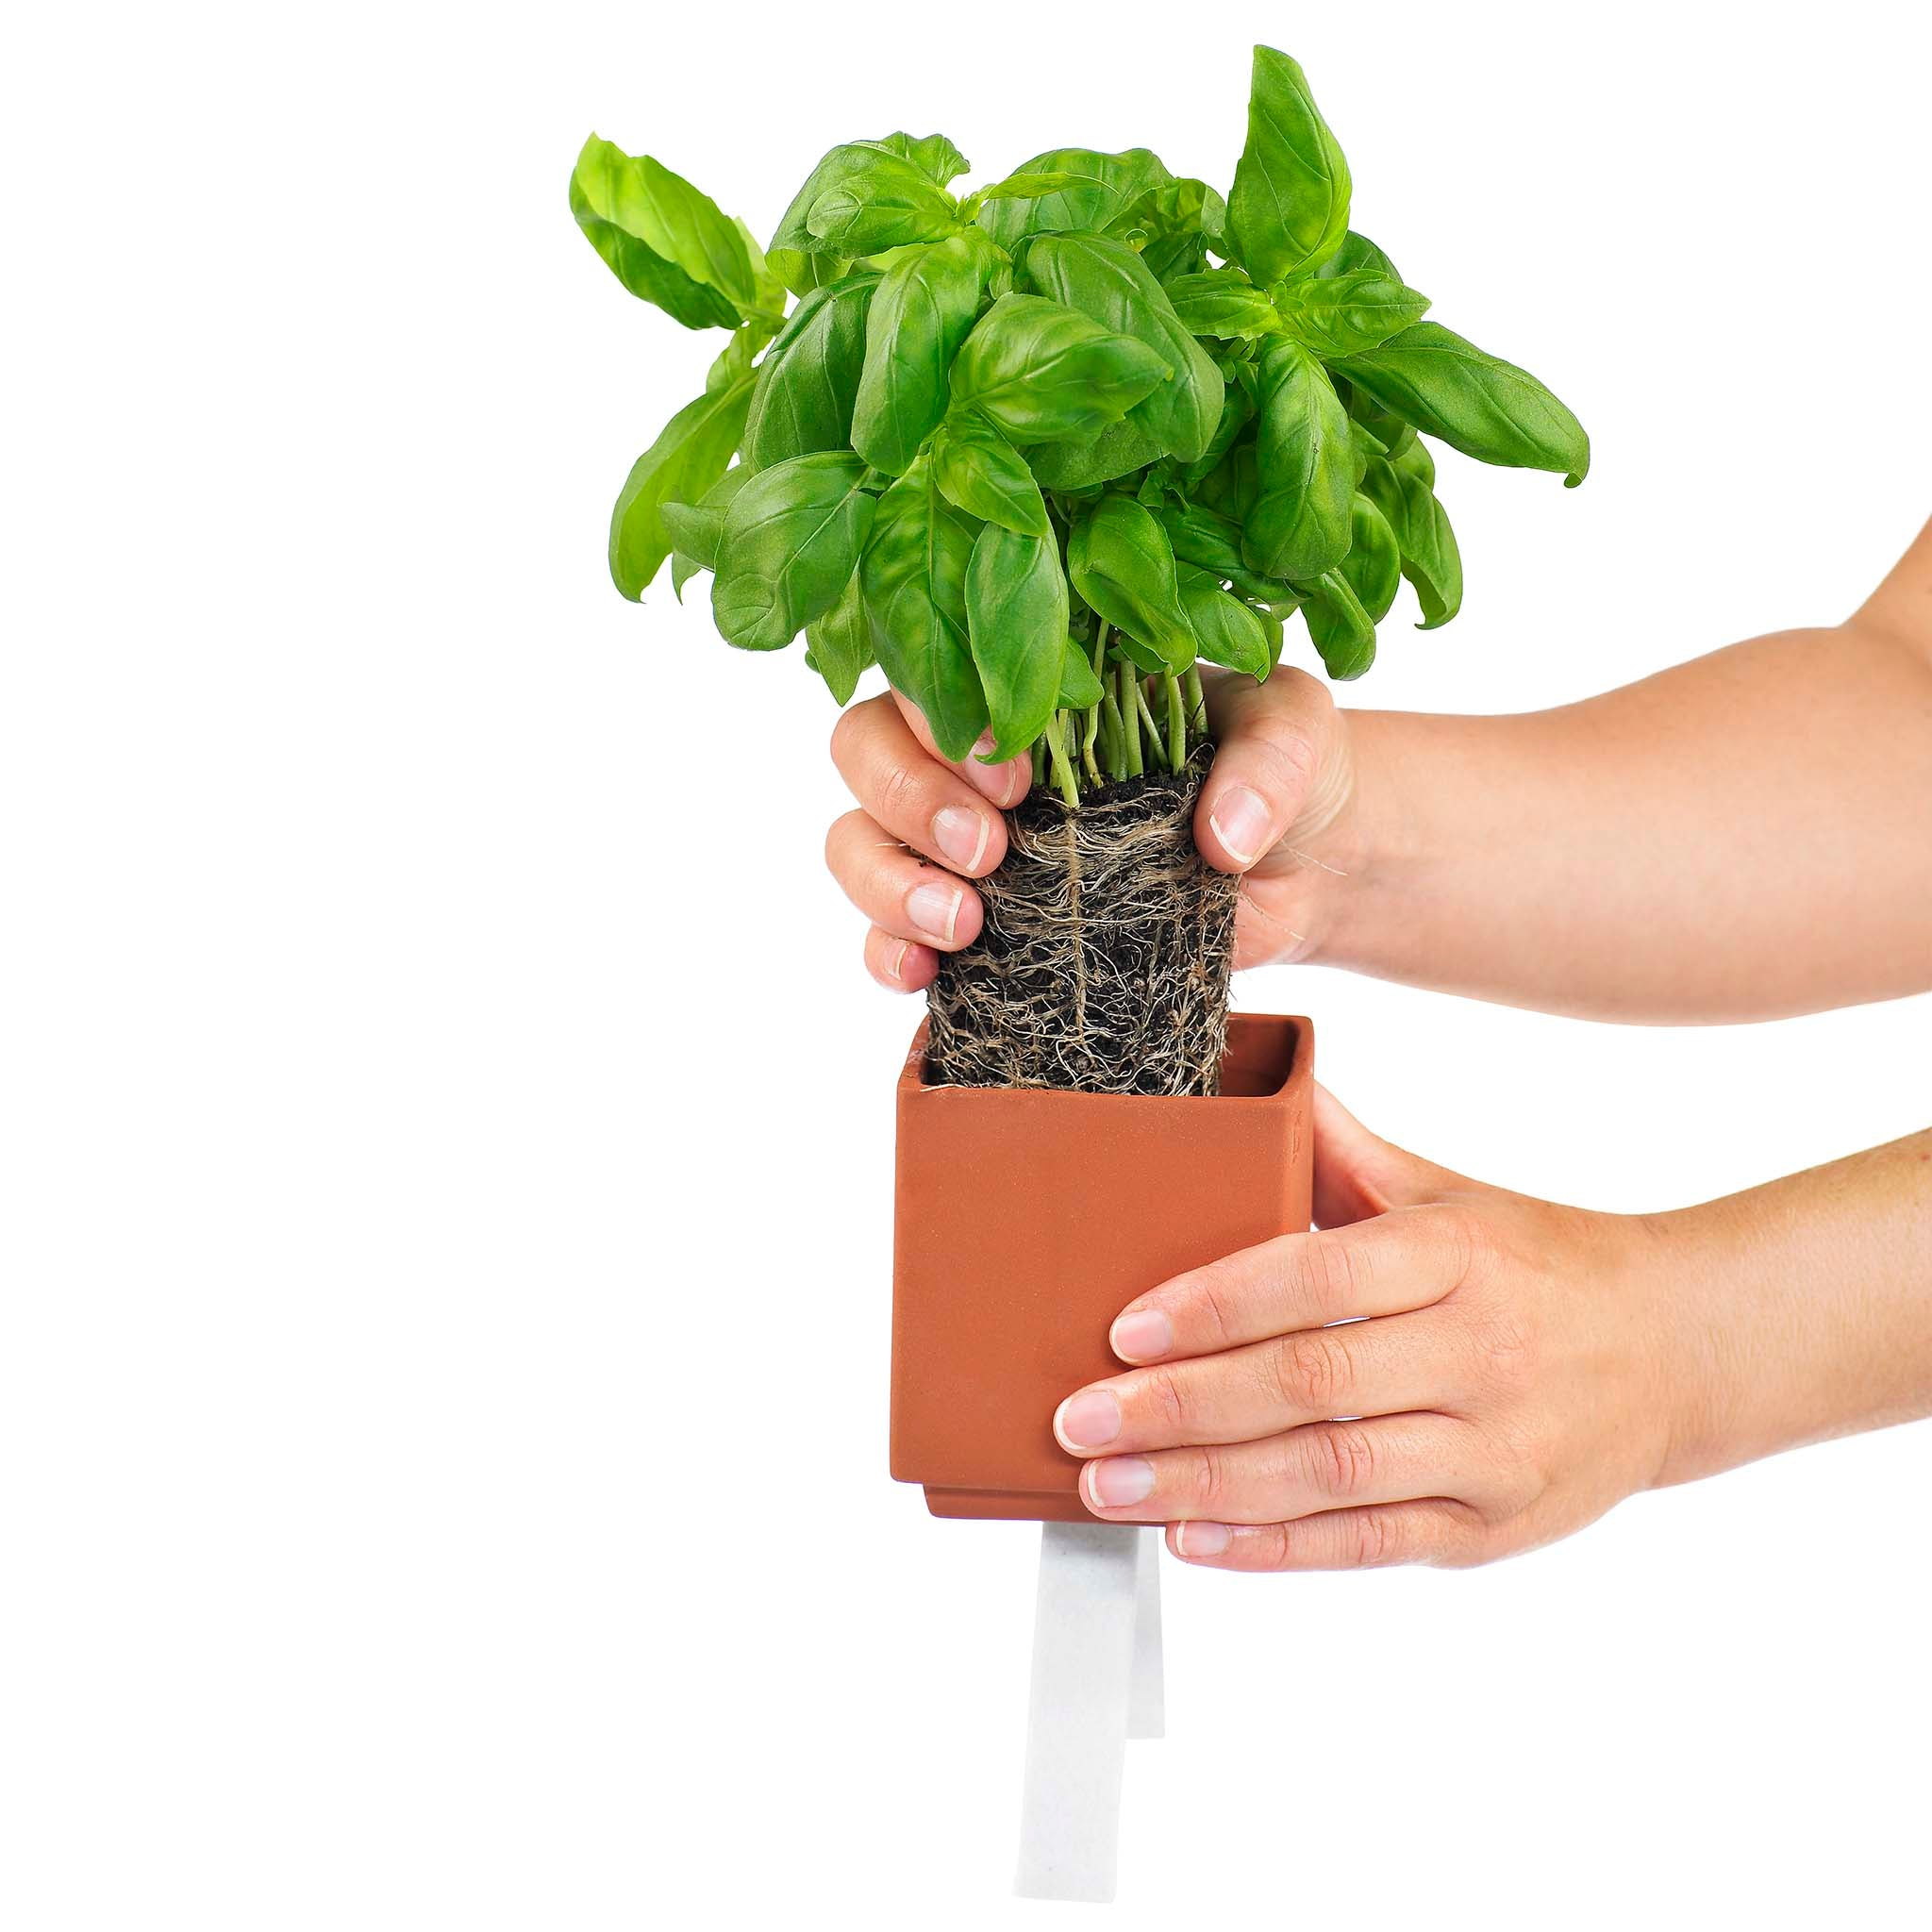 A felt pad draws water from the lower section, maintaining moisture for the plant from below at the ideal rate.